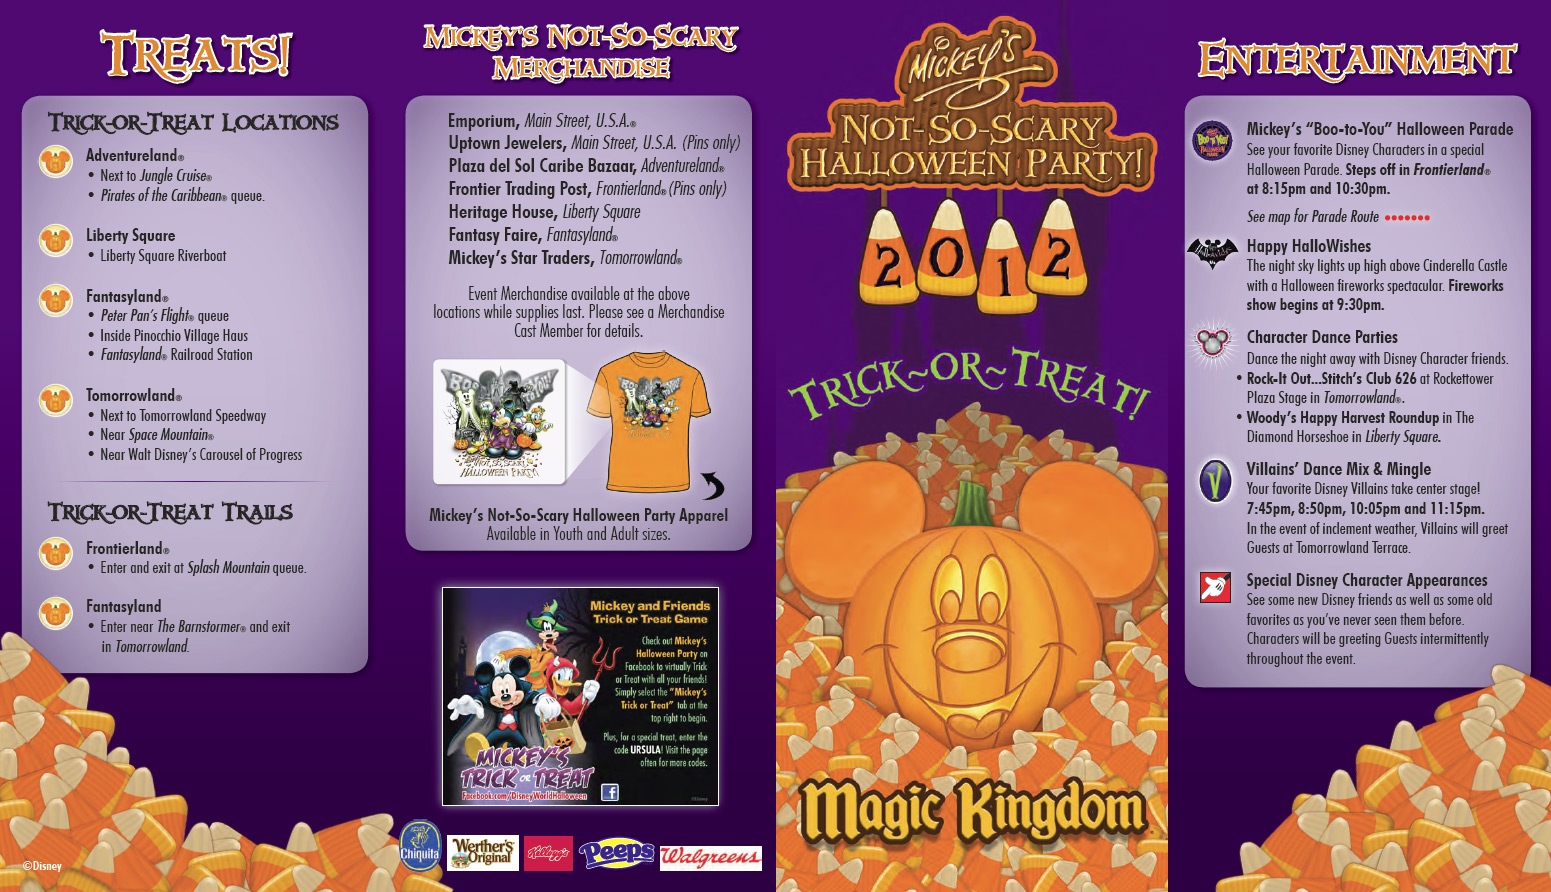 photos - mickey's not-so-scary halloween party 2012 guide map